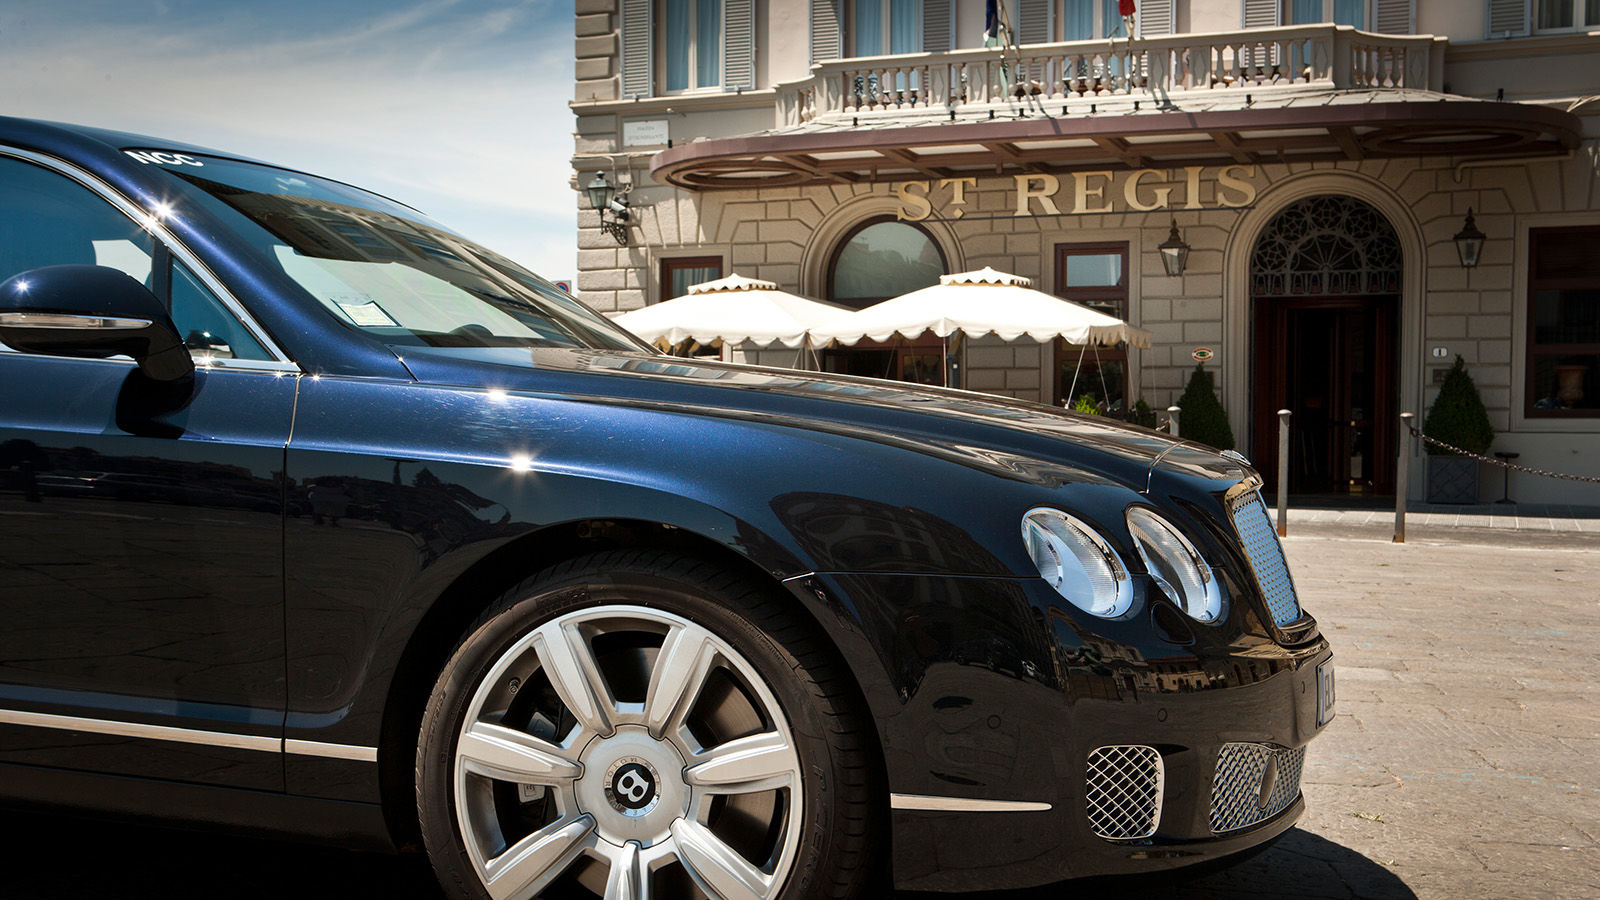 The St. Regis Florence Bentley car